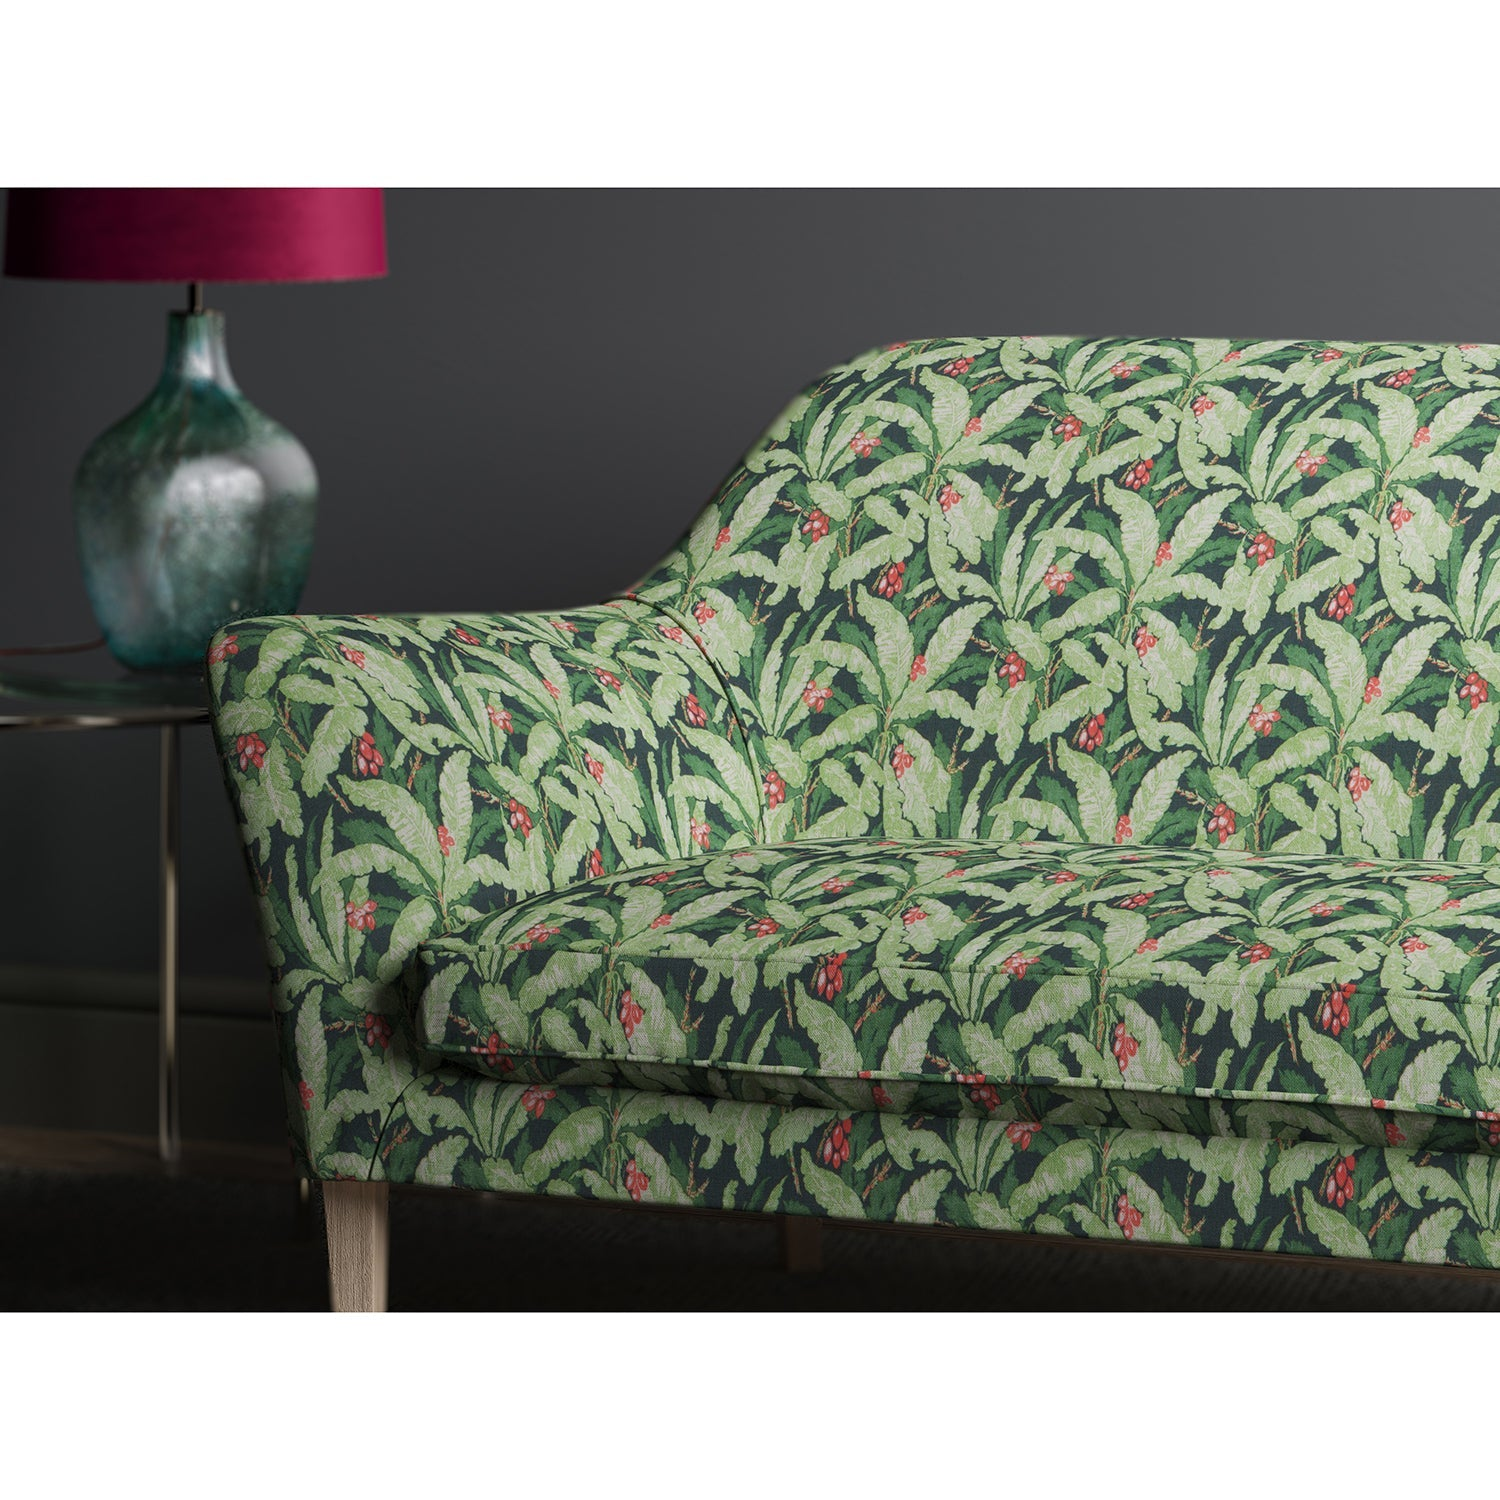 Sofa in a tropical navy and green printed leaf fabric